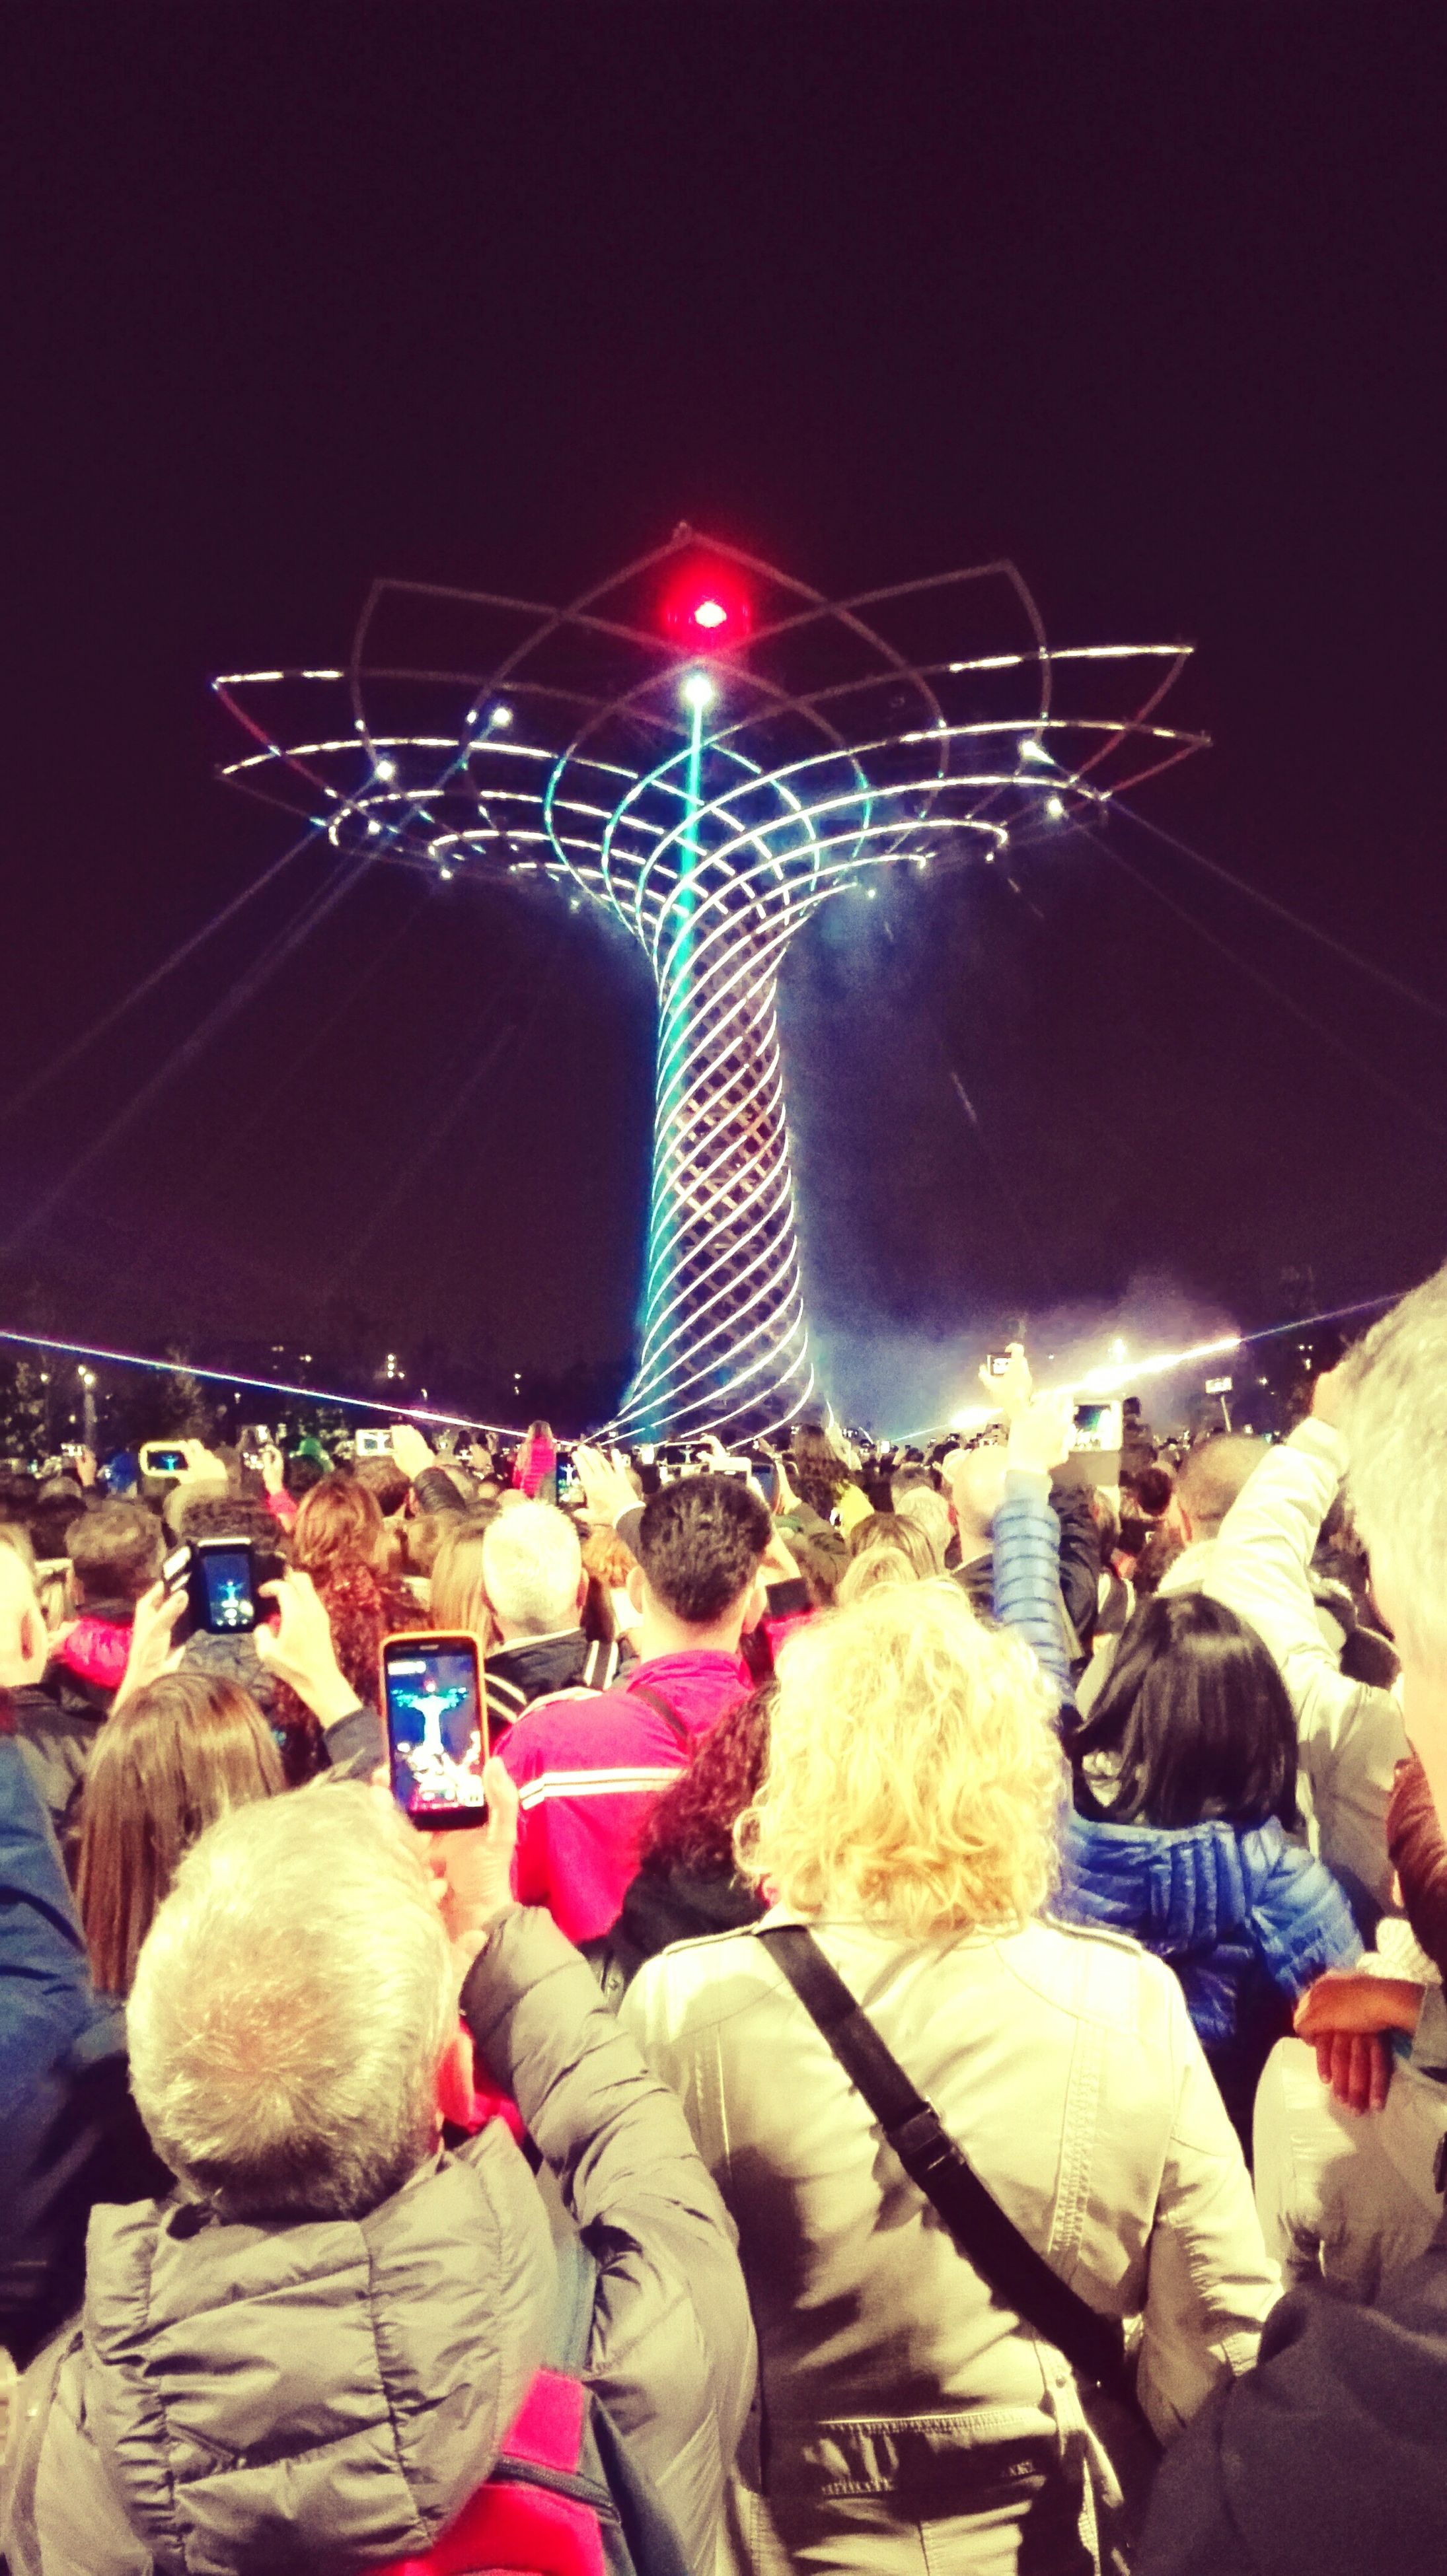 night, lifestyles, leisure activity, men, arts culture and entertainment, illuminated, person, music, performance, celebration, large group of people, enjoyment, event, togetherness, fun, rear view, standing, holding